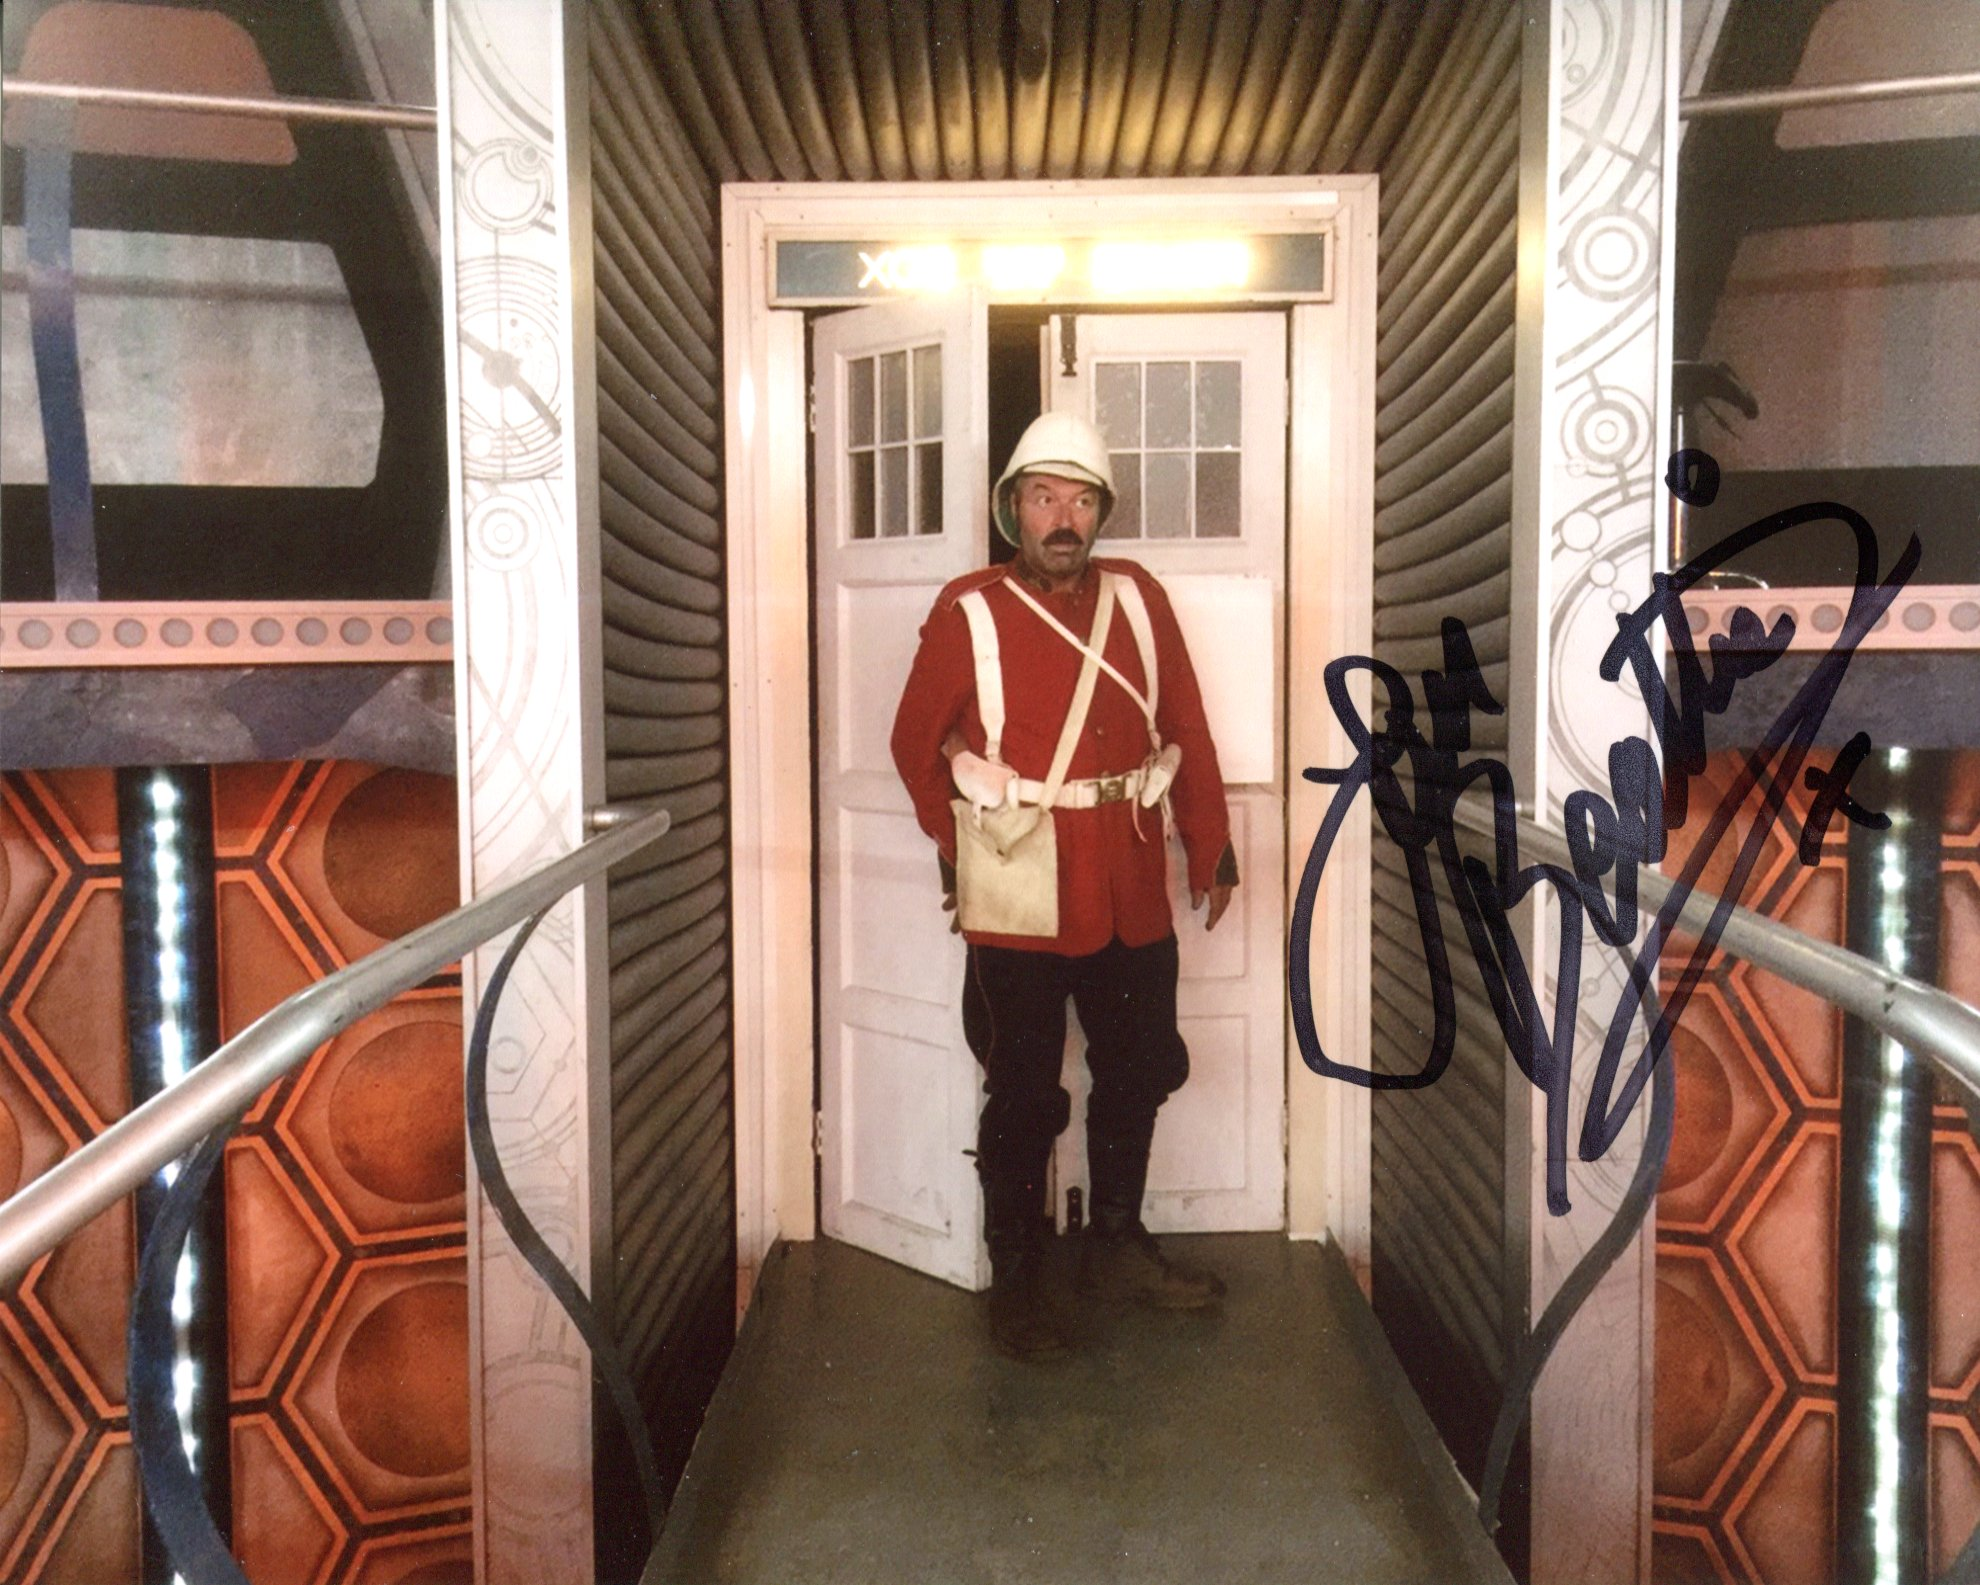 Doctor Who 8x10 scene photo signed by actor Ian Beattie. Good condition. All autographs come with